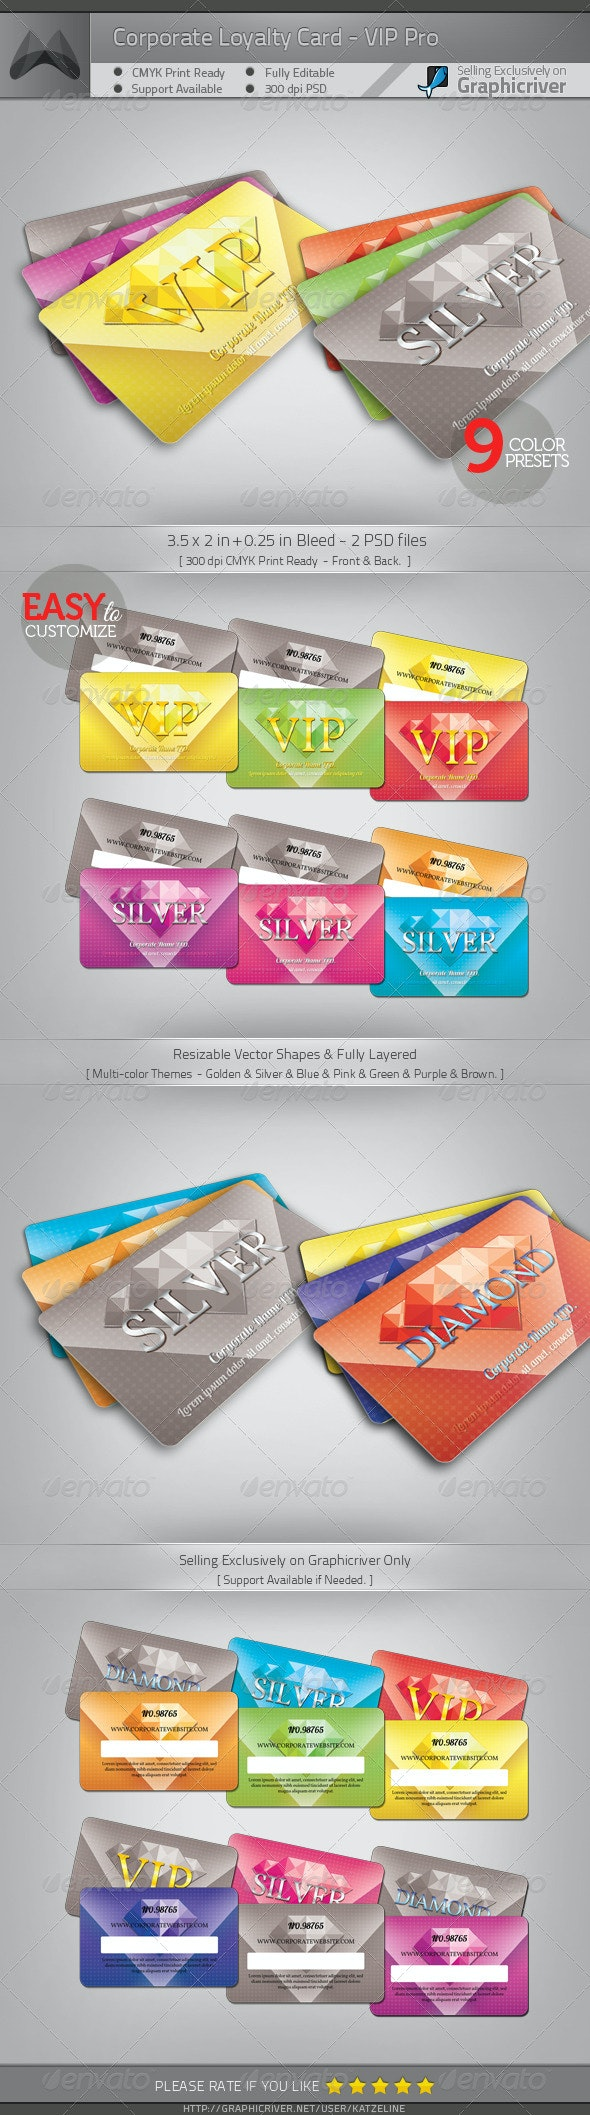 Loyalty Card - VIP Pro - Loyalty Cards Cards & Invites